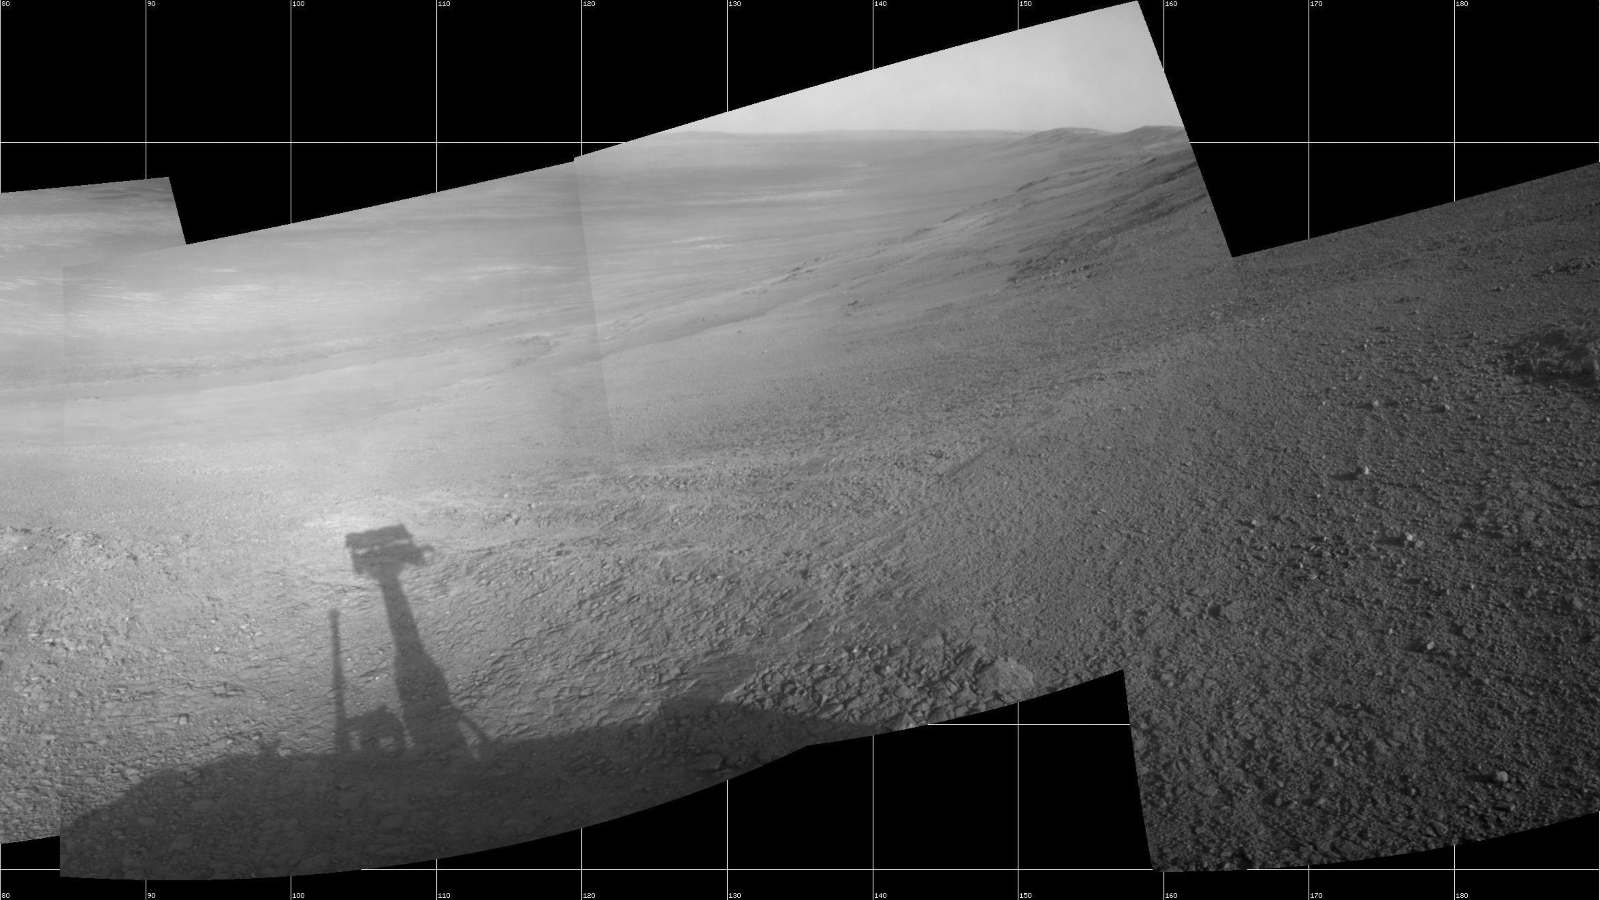 Opportunity's View Down 'Perseverance Valley' After Entry at Top